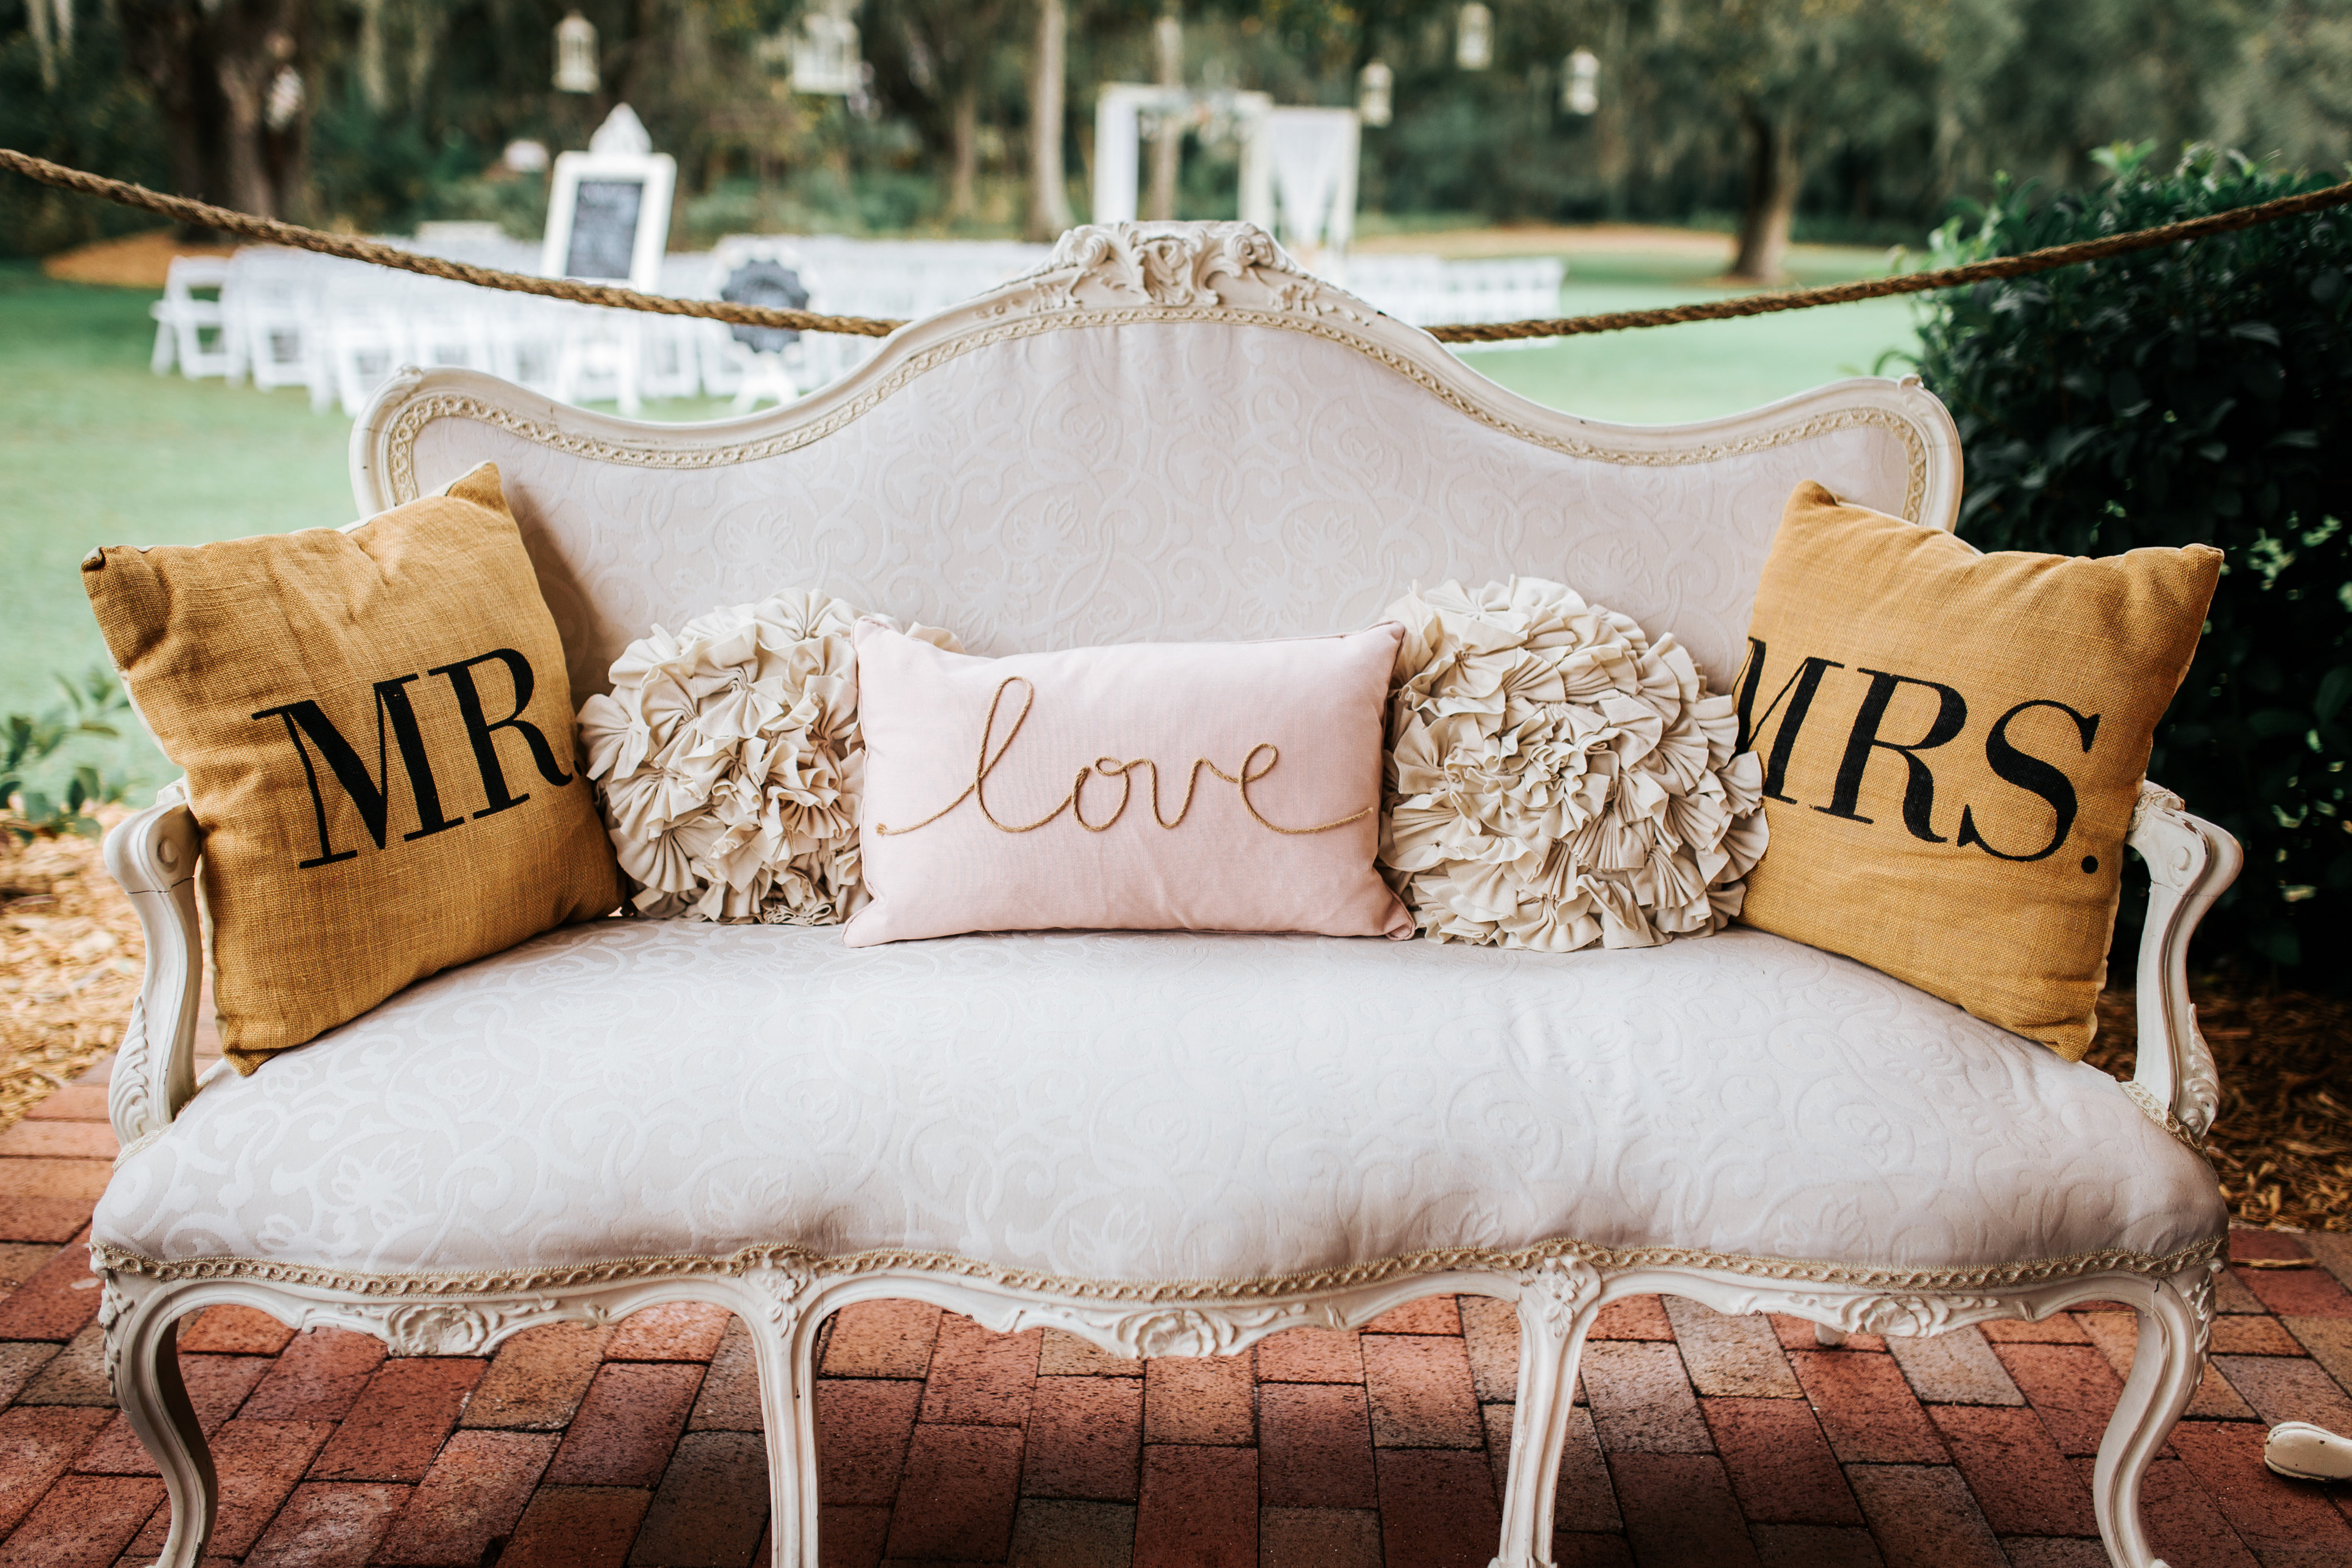 A Relaxed Rustic Inspired Wedding at Cross Creek Ranch in Dover, FL ...